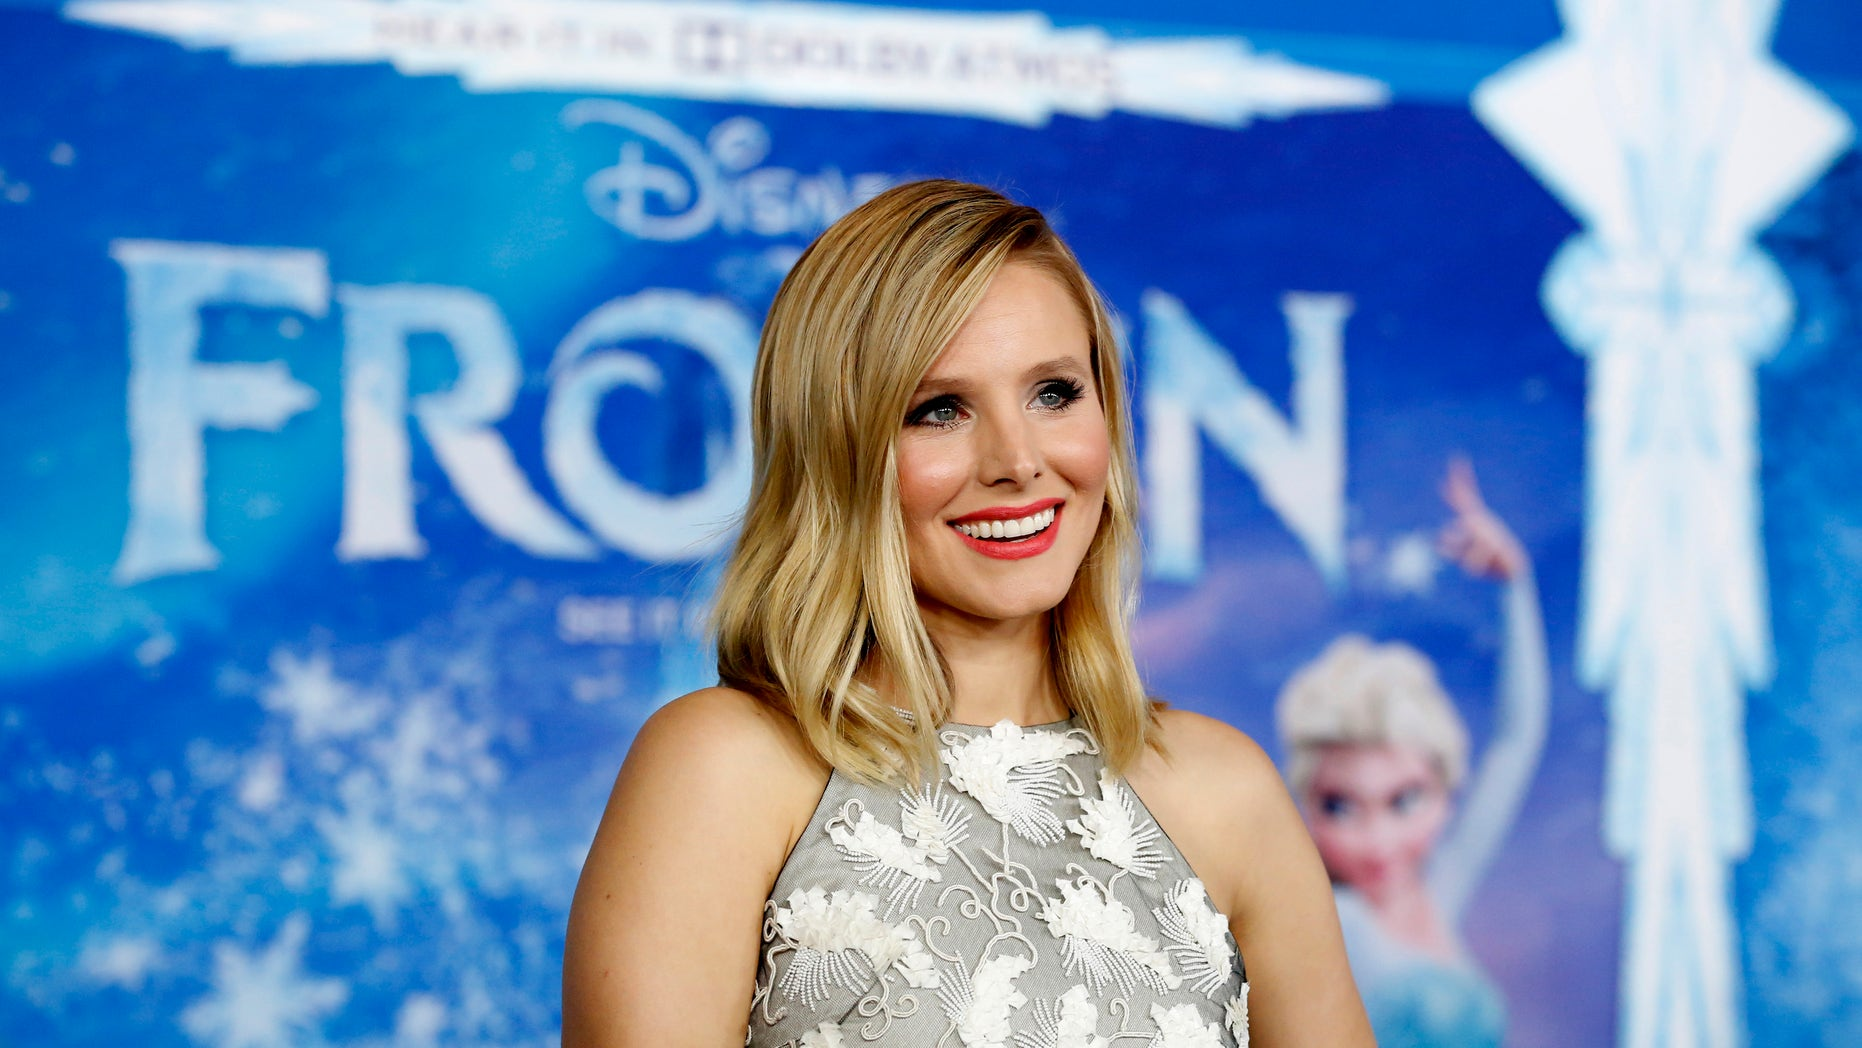 """Cast member Kristen Bell poses at the premiere of """"Frozen"""" at El Capitan theatre in Hollywood, California November 19, 2013."""